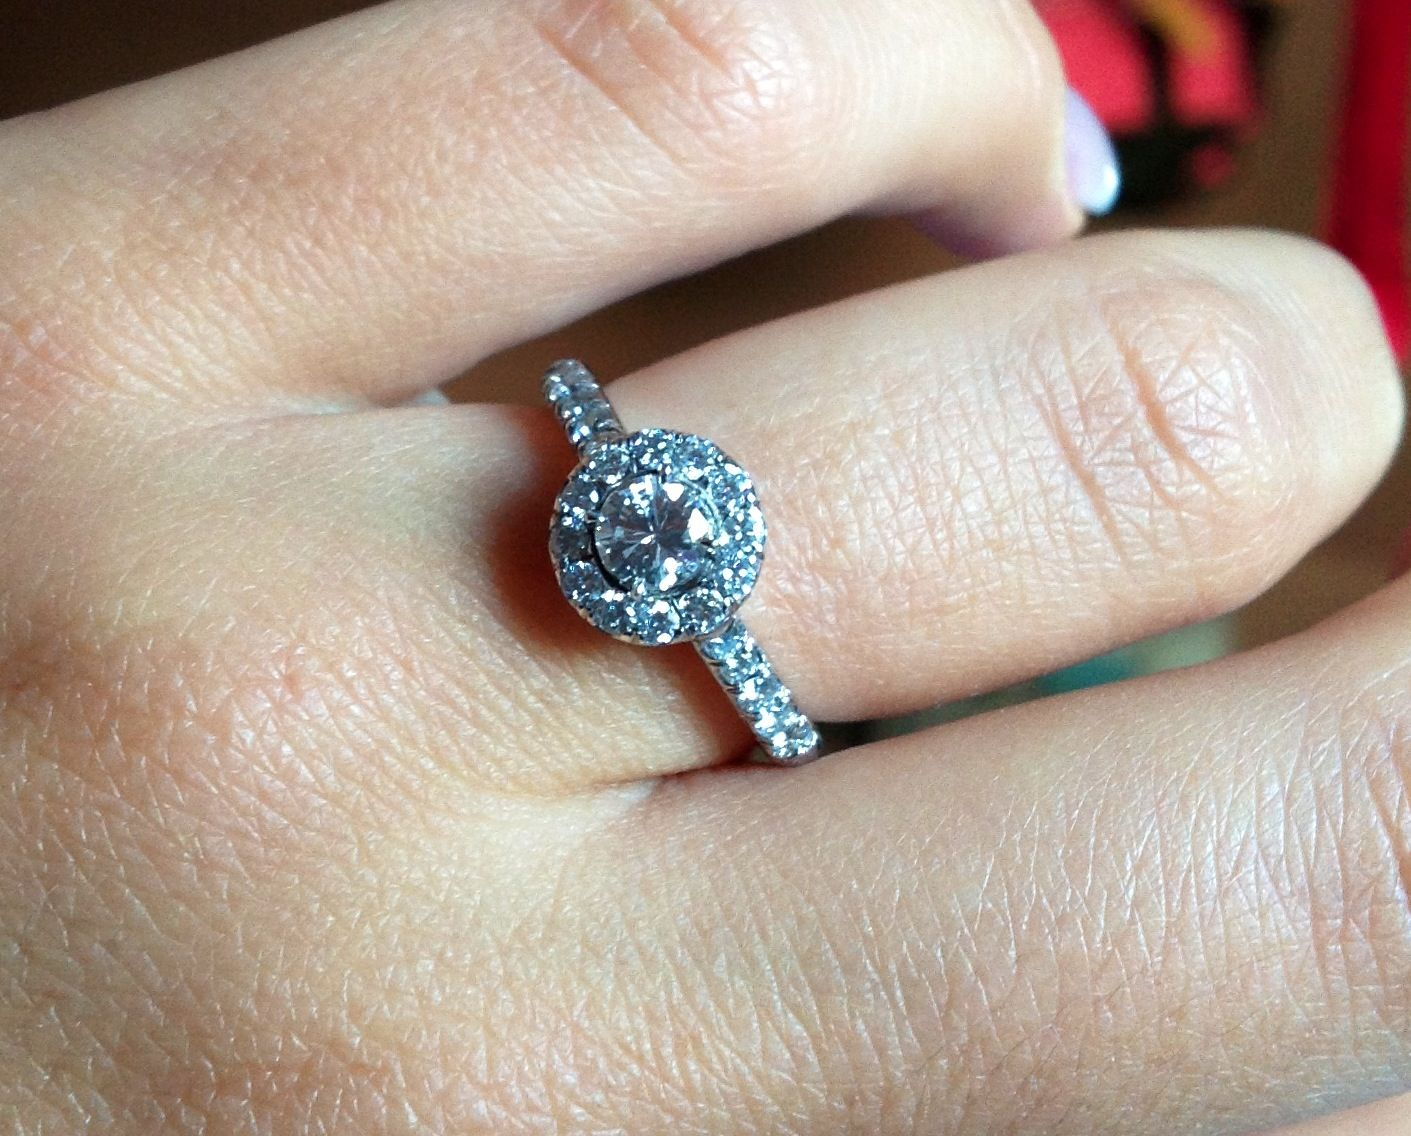 My engagement ring. I love it <3